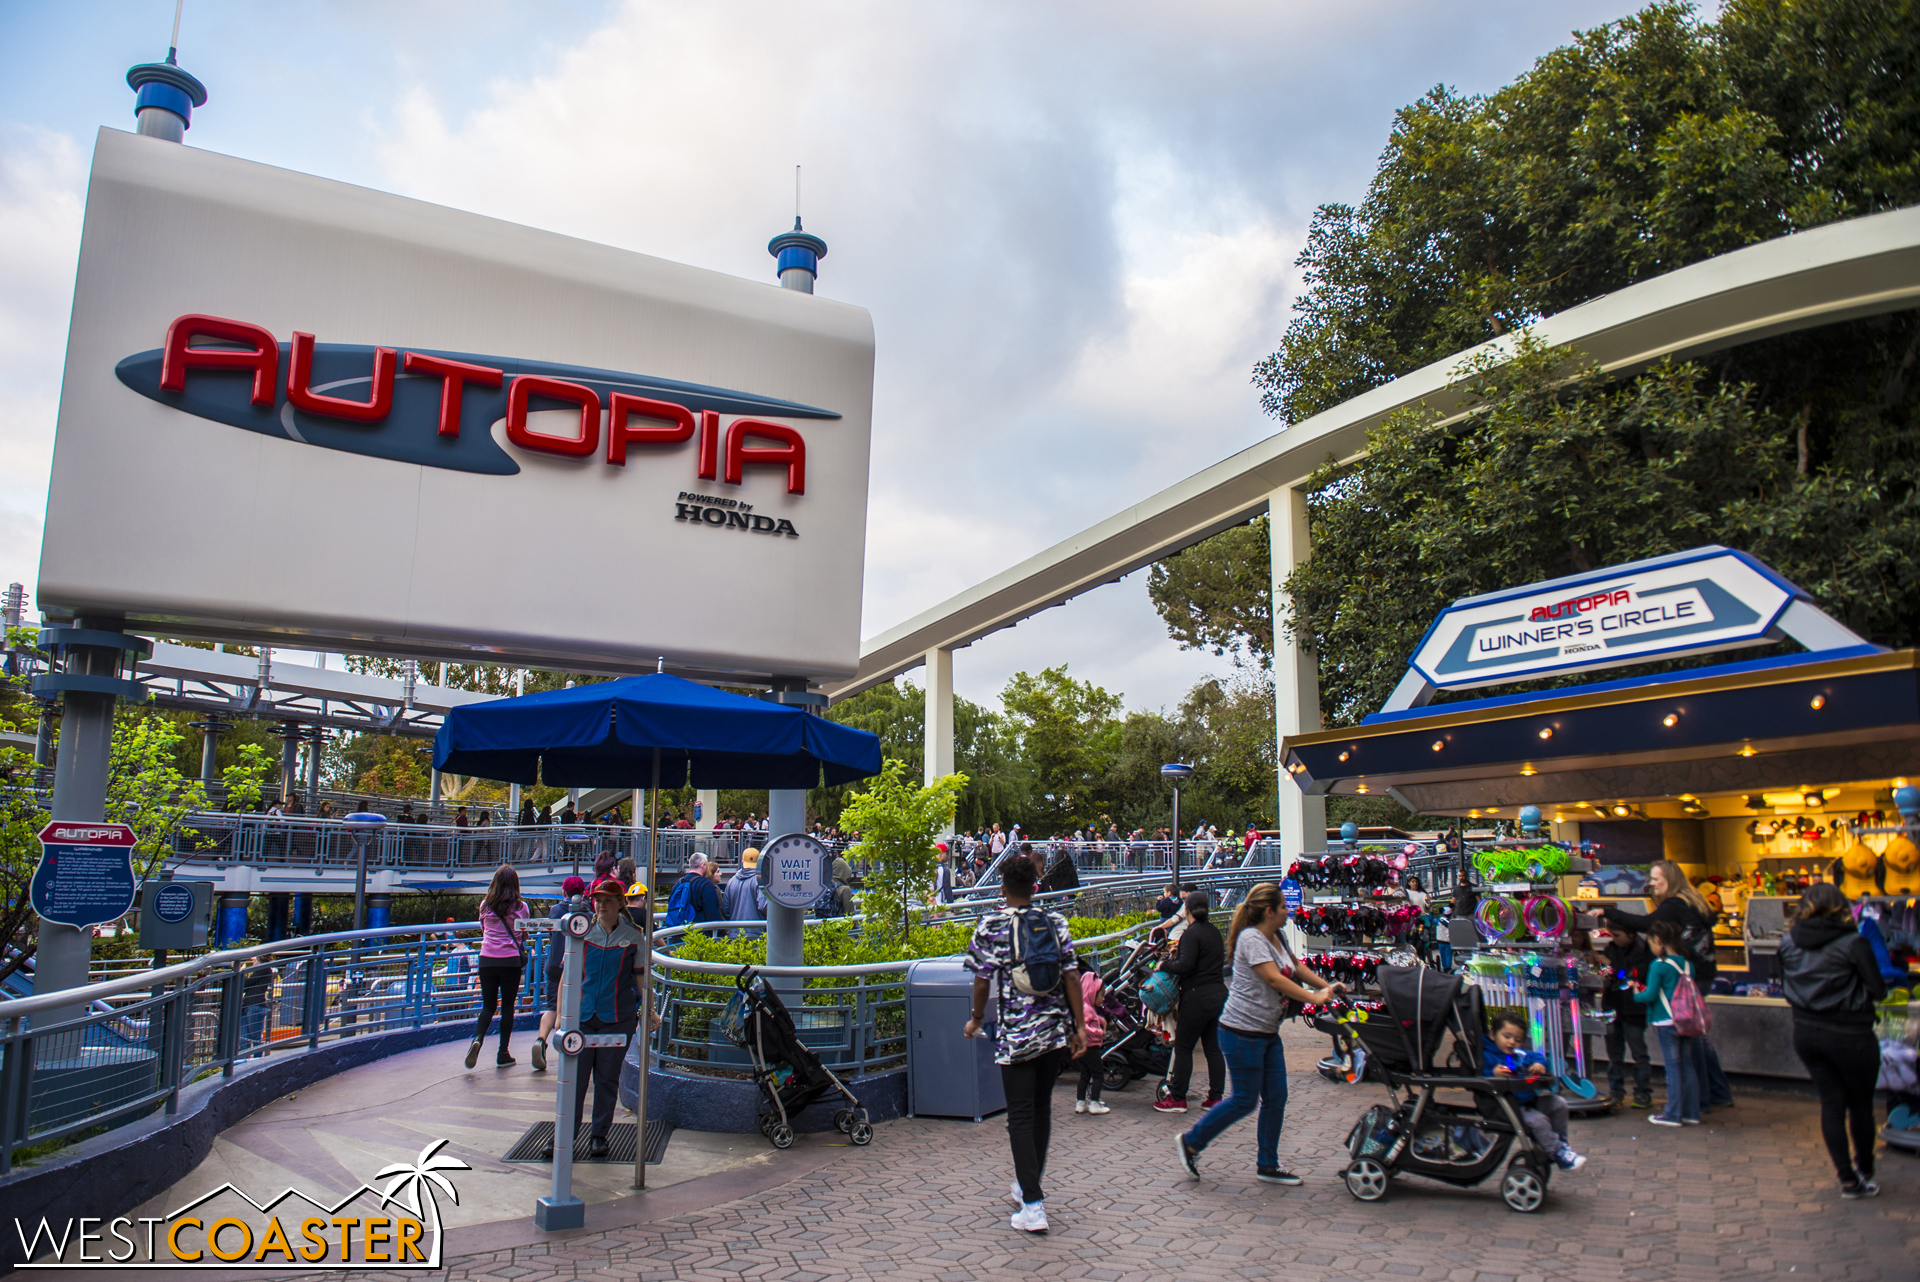 Over in Tomorrowland, the Autopia has been given a little freshening up.